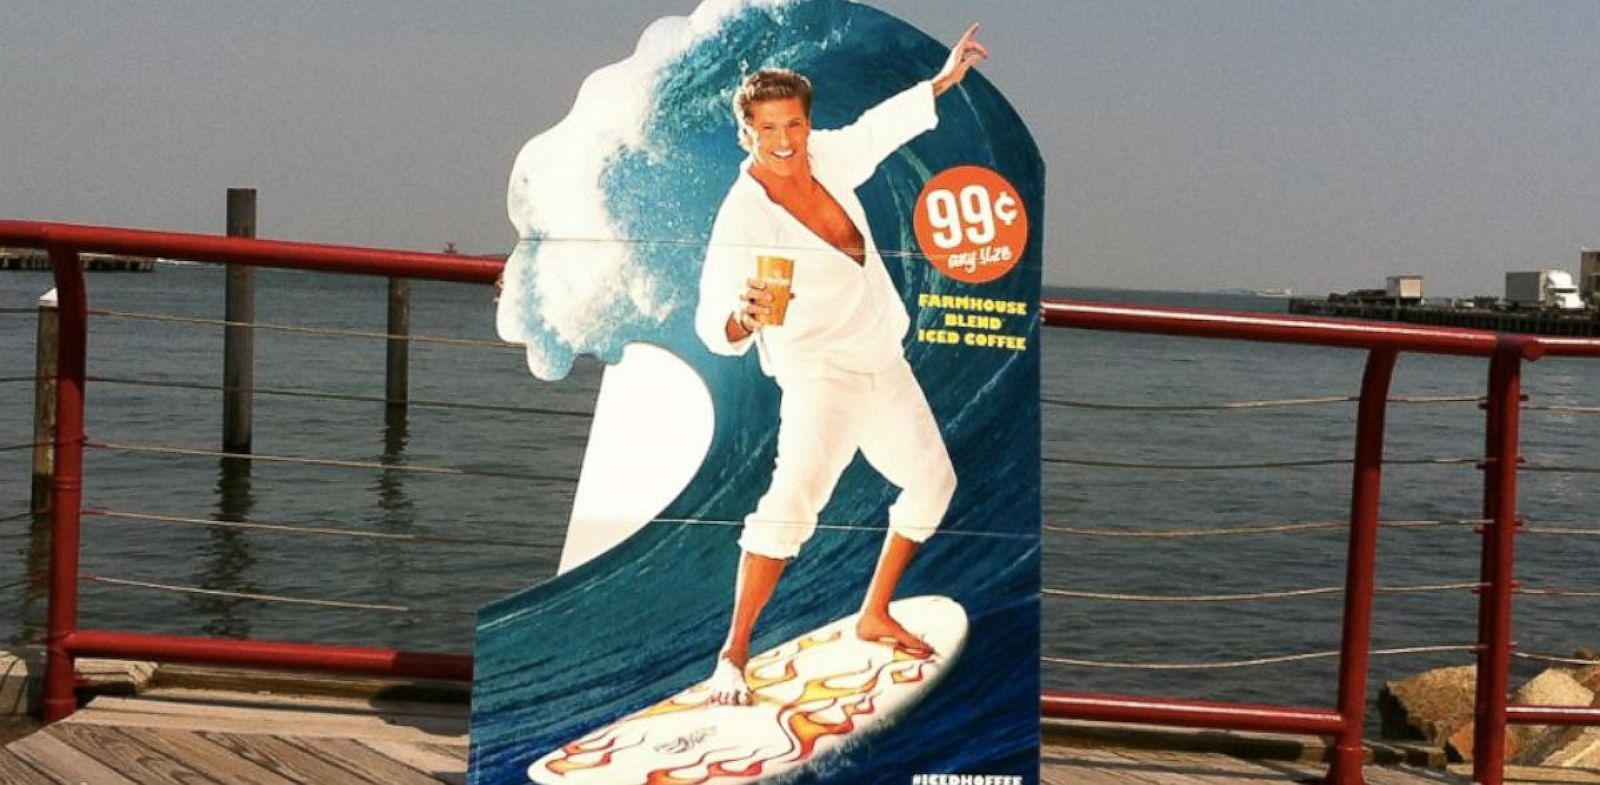 """PHOTO: David Hasselhoff is the face of Cumberland Farms iced coffee drink, cleverly called the """"Iced Hoffee""""."""